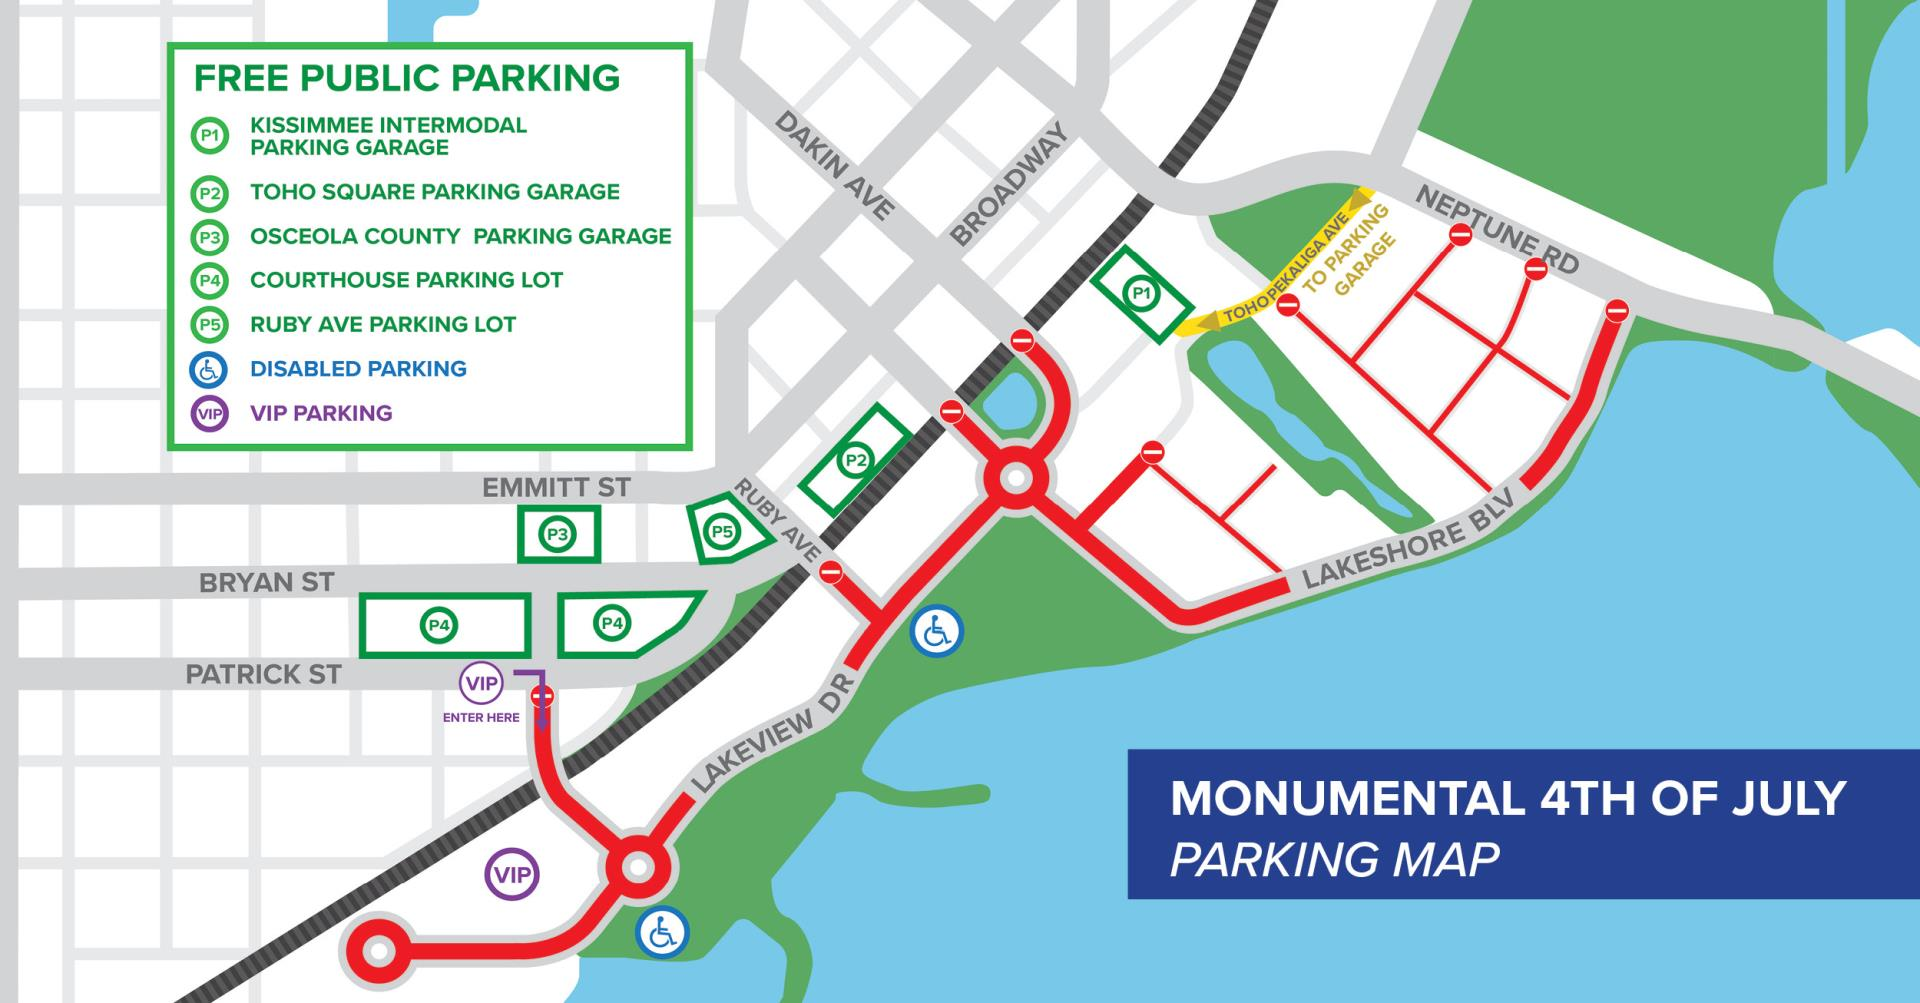 18_07_04 Monumental 4th of July Parking Map